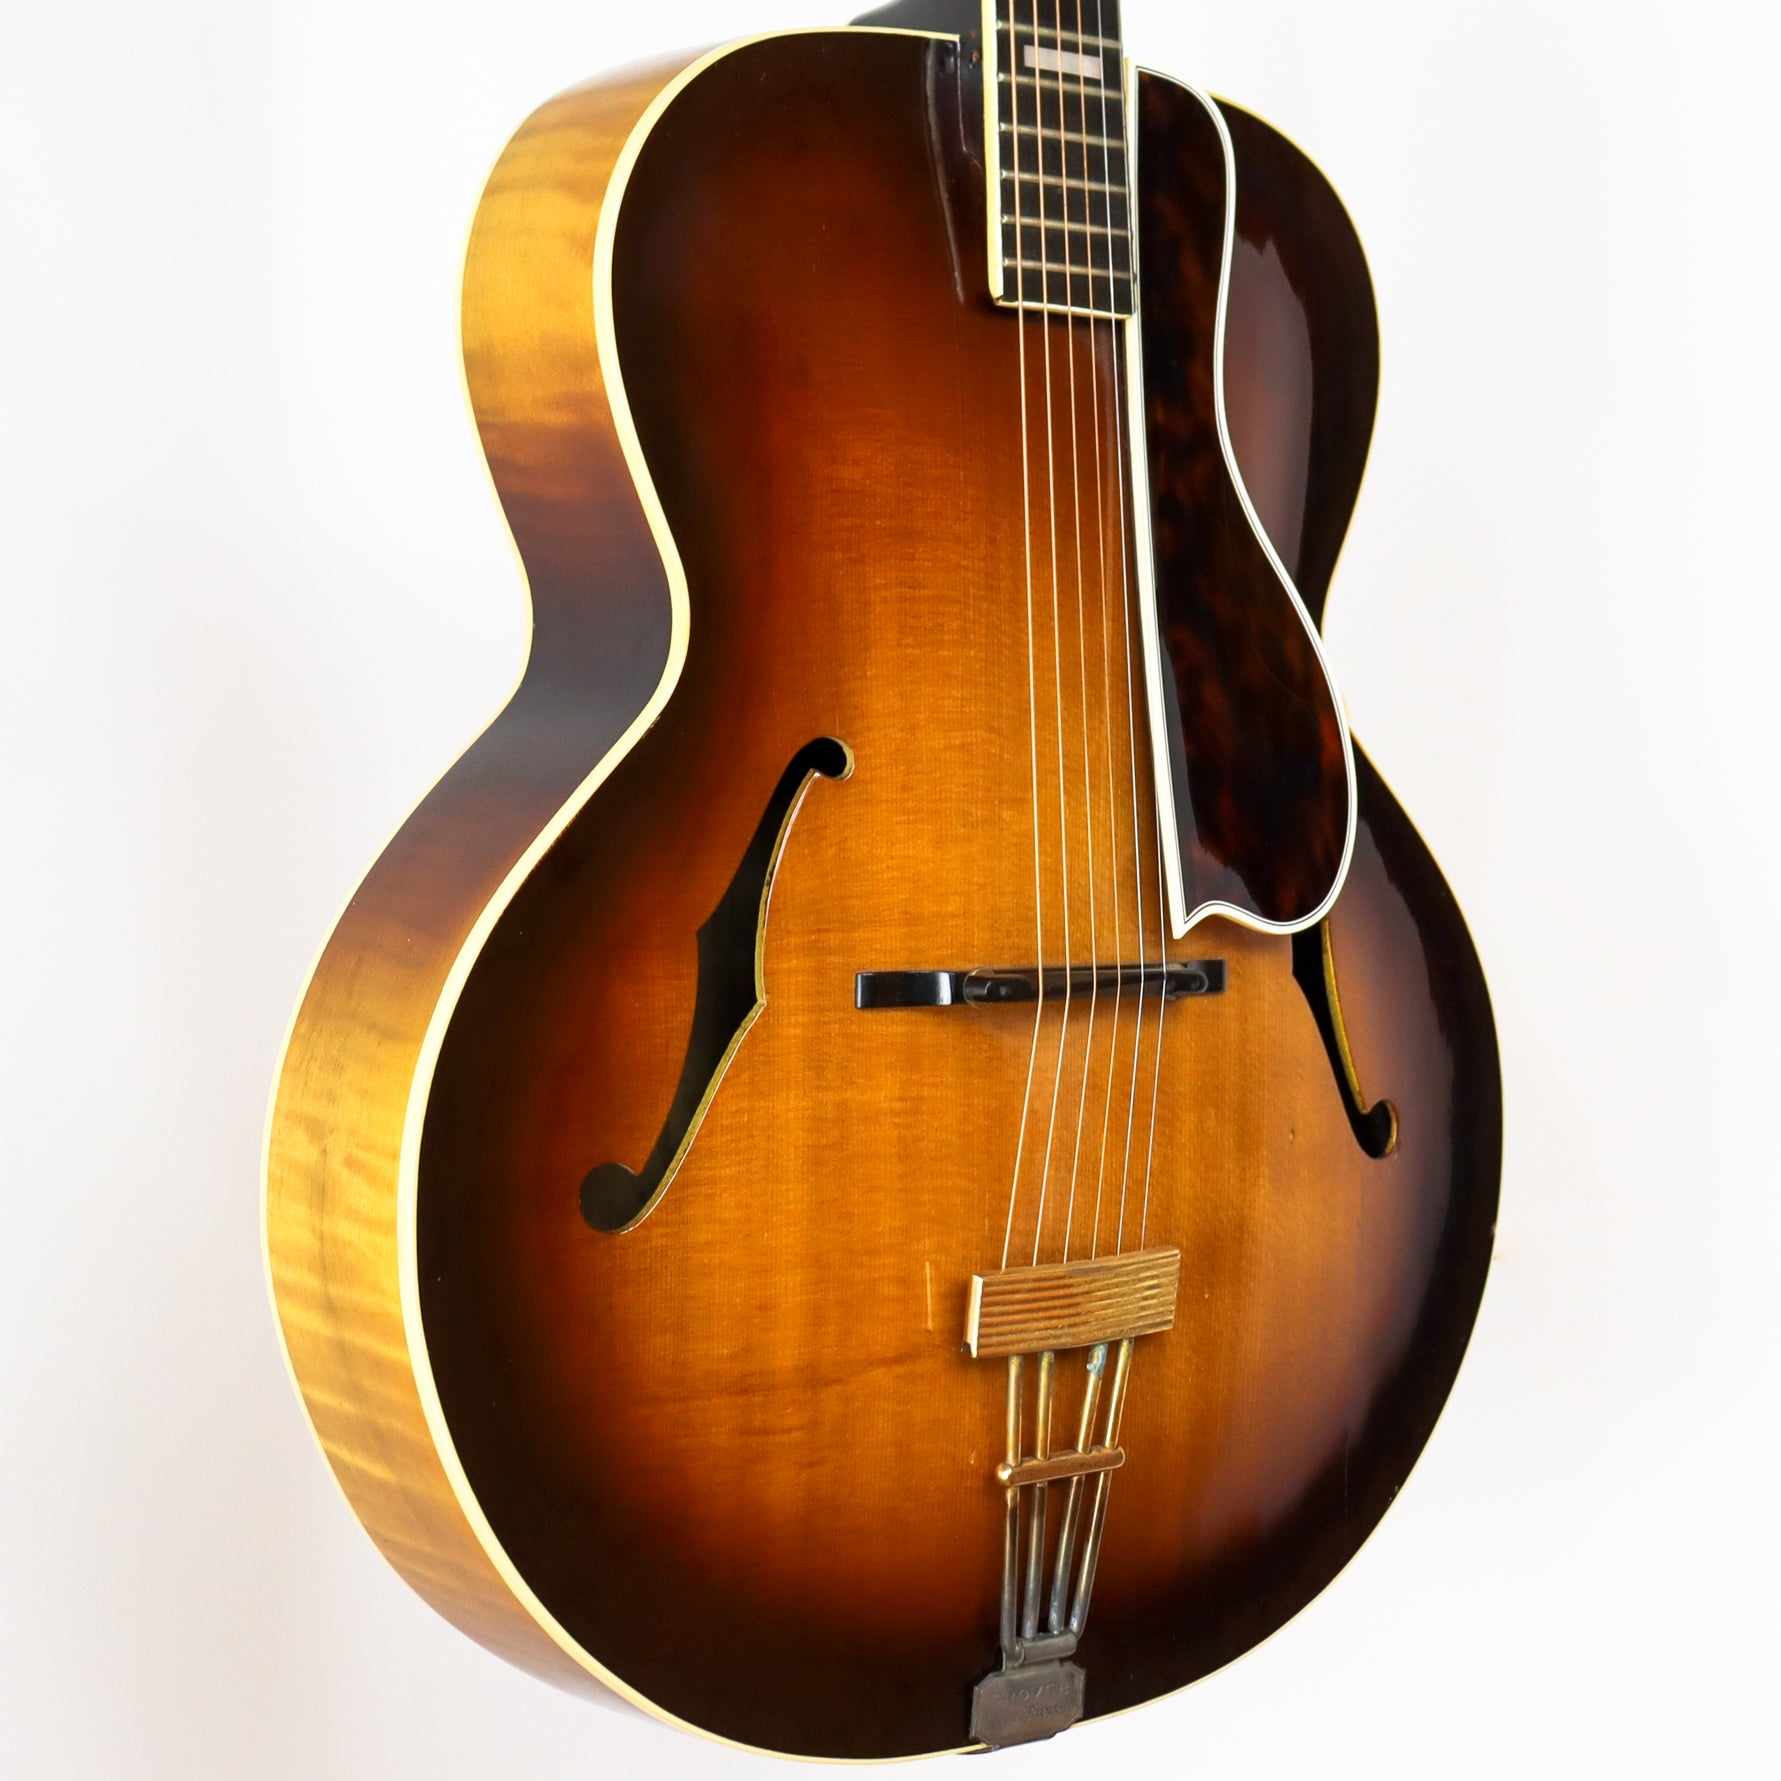 D'Angelico 1938 Style A-1 Sunburst SN# 1369 with Hardshell Case